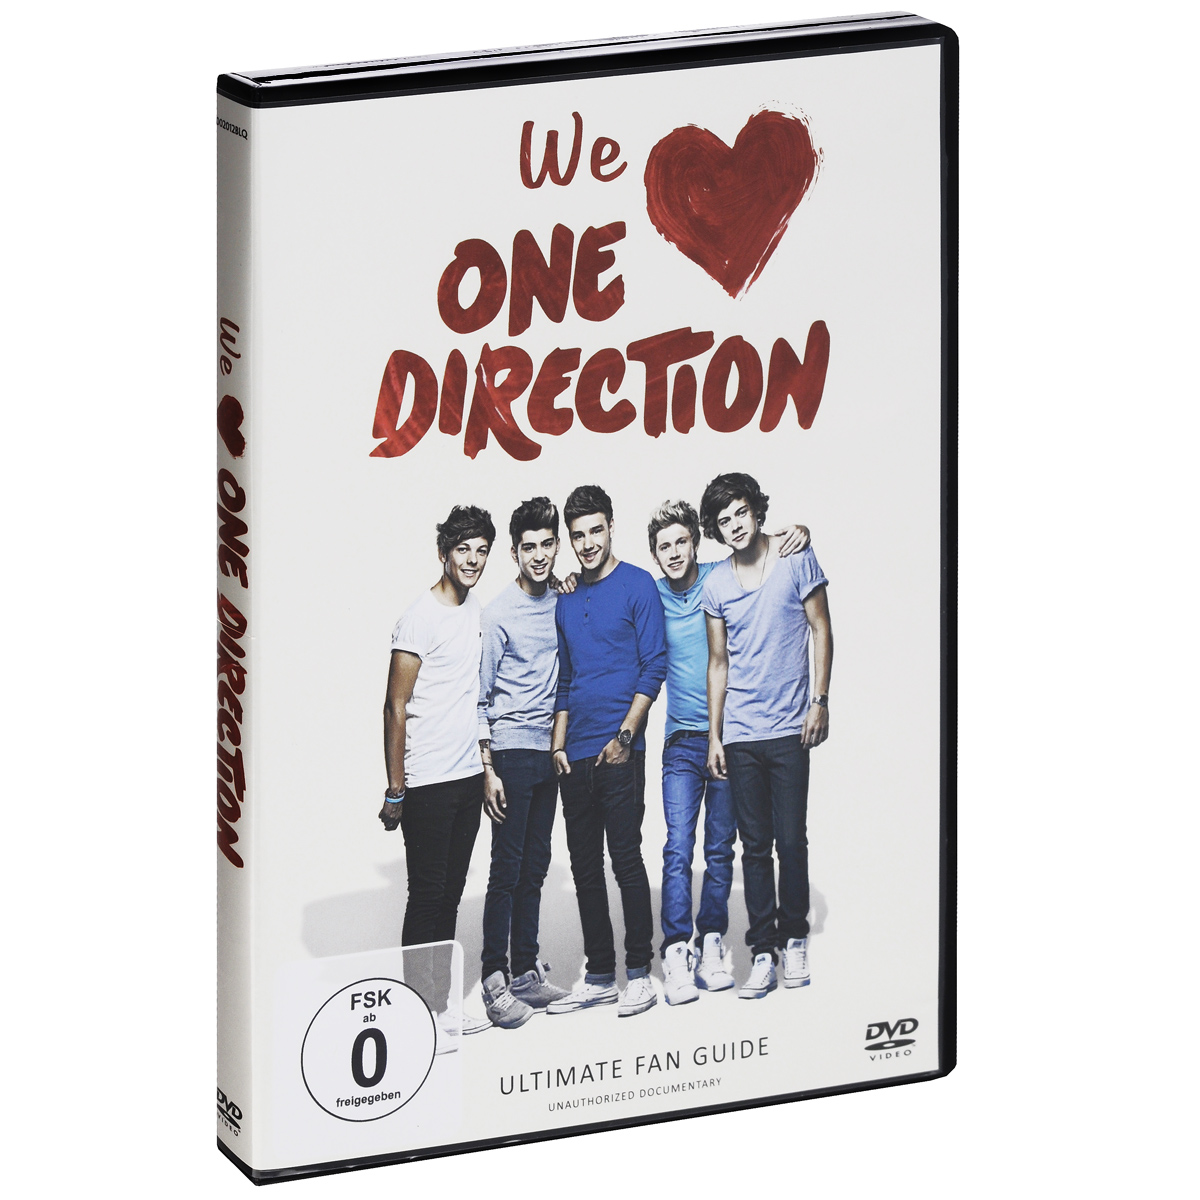 One Direction: We Love One Direction louis tomlinson one direction signed 8x10 photo